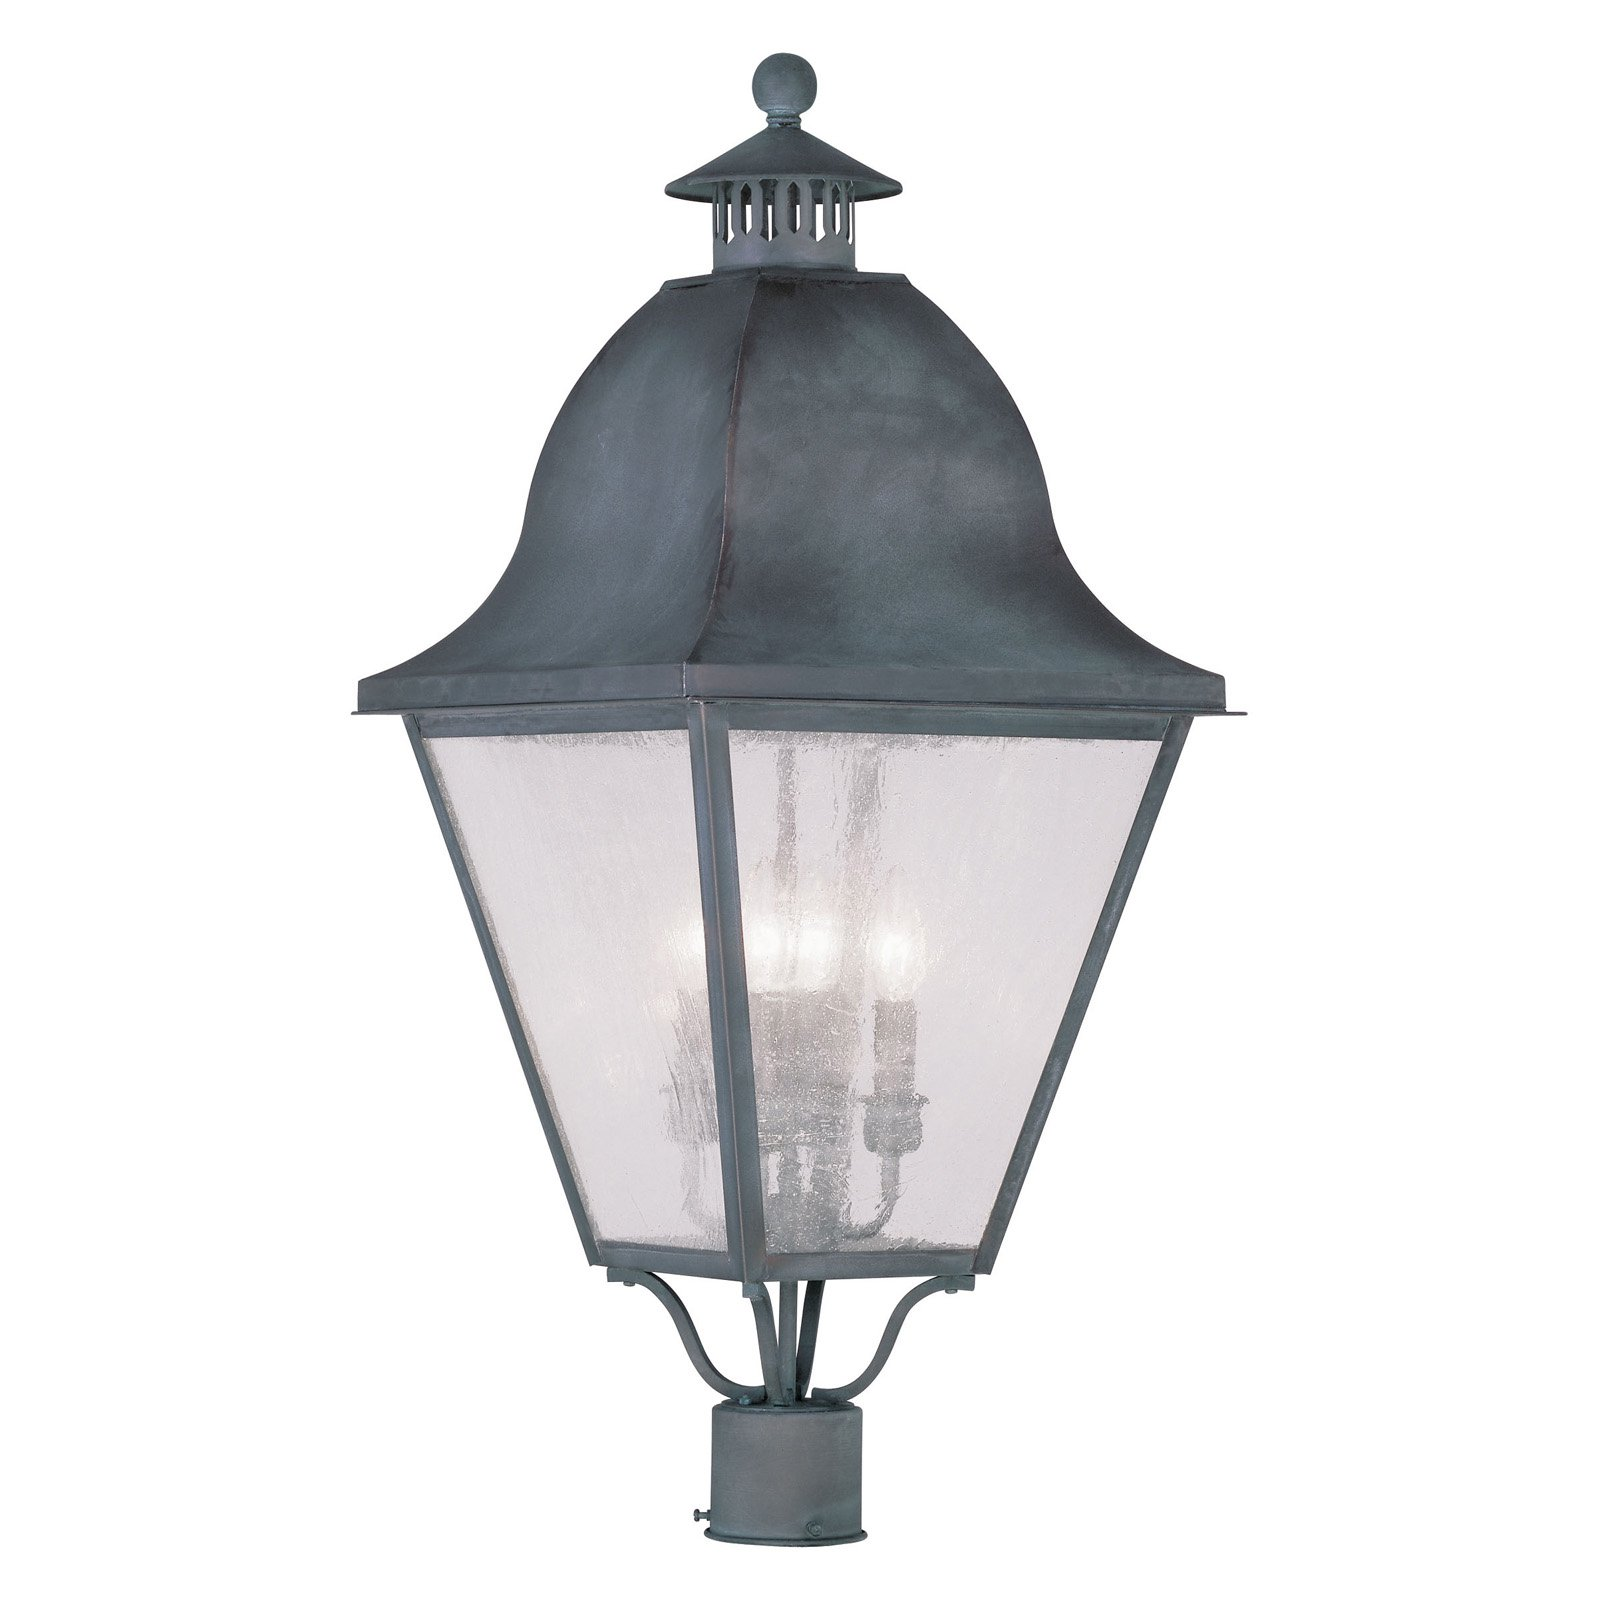 Livex Amwell 2548-61 4-Light Outdoor Post Head in Charcoal